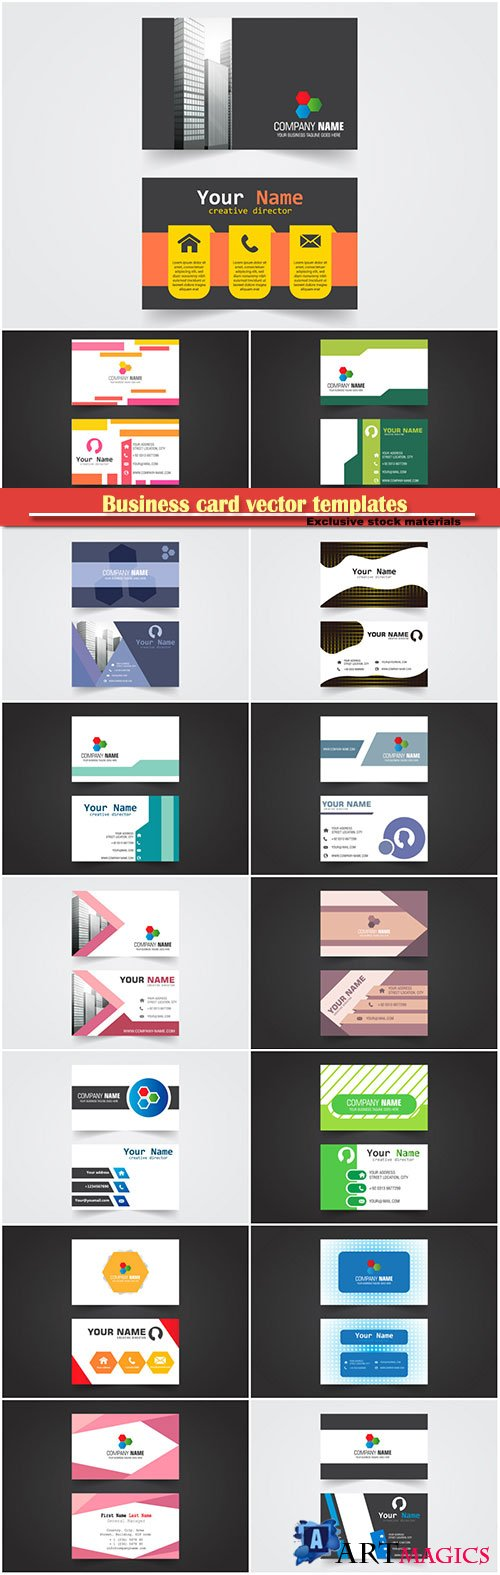 Business card vector templates # 39